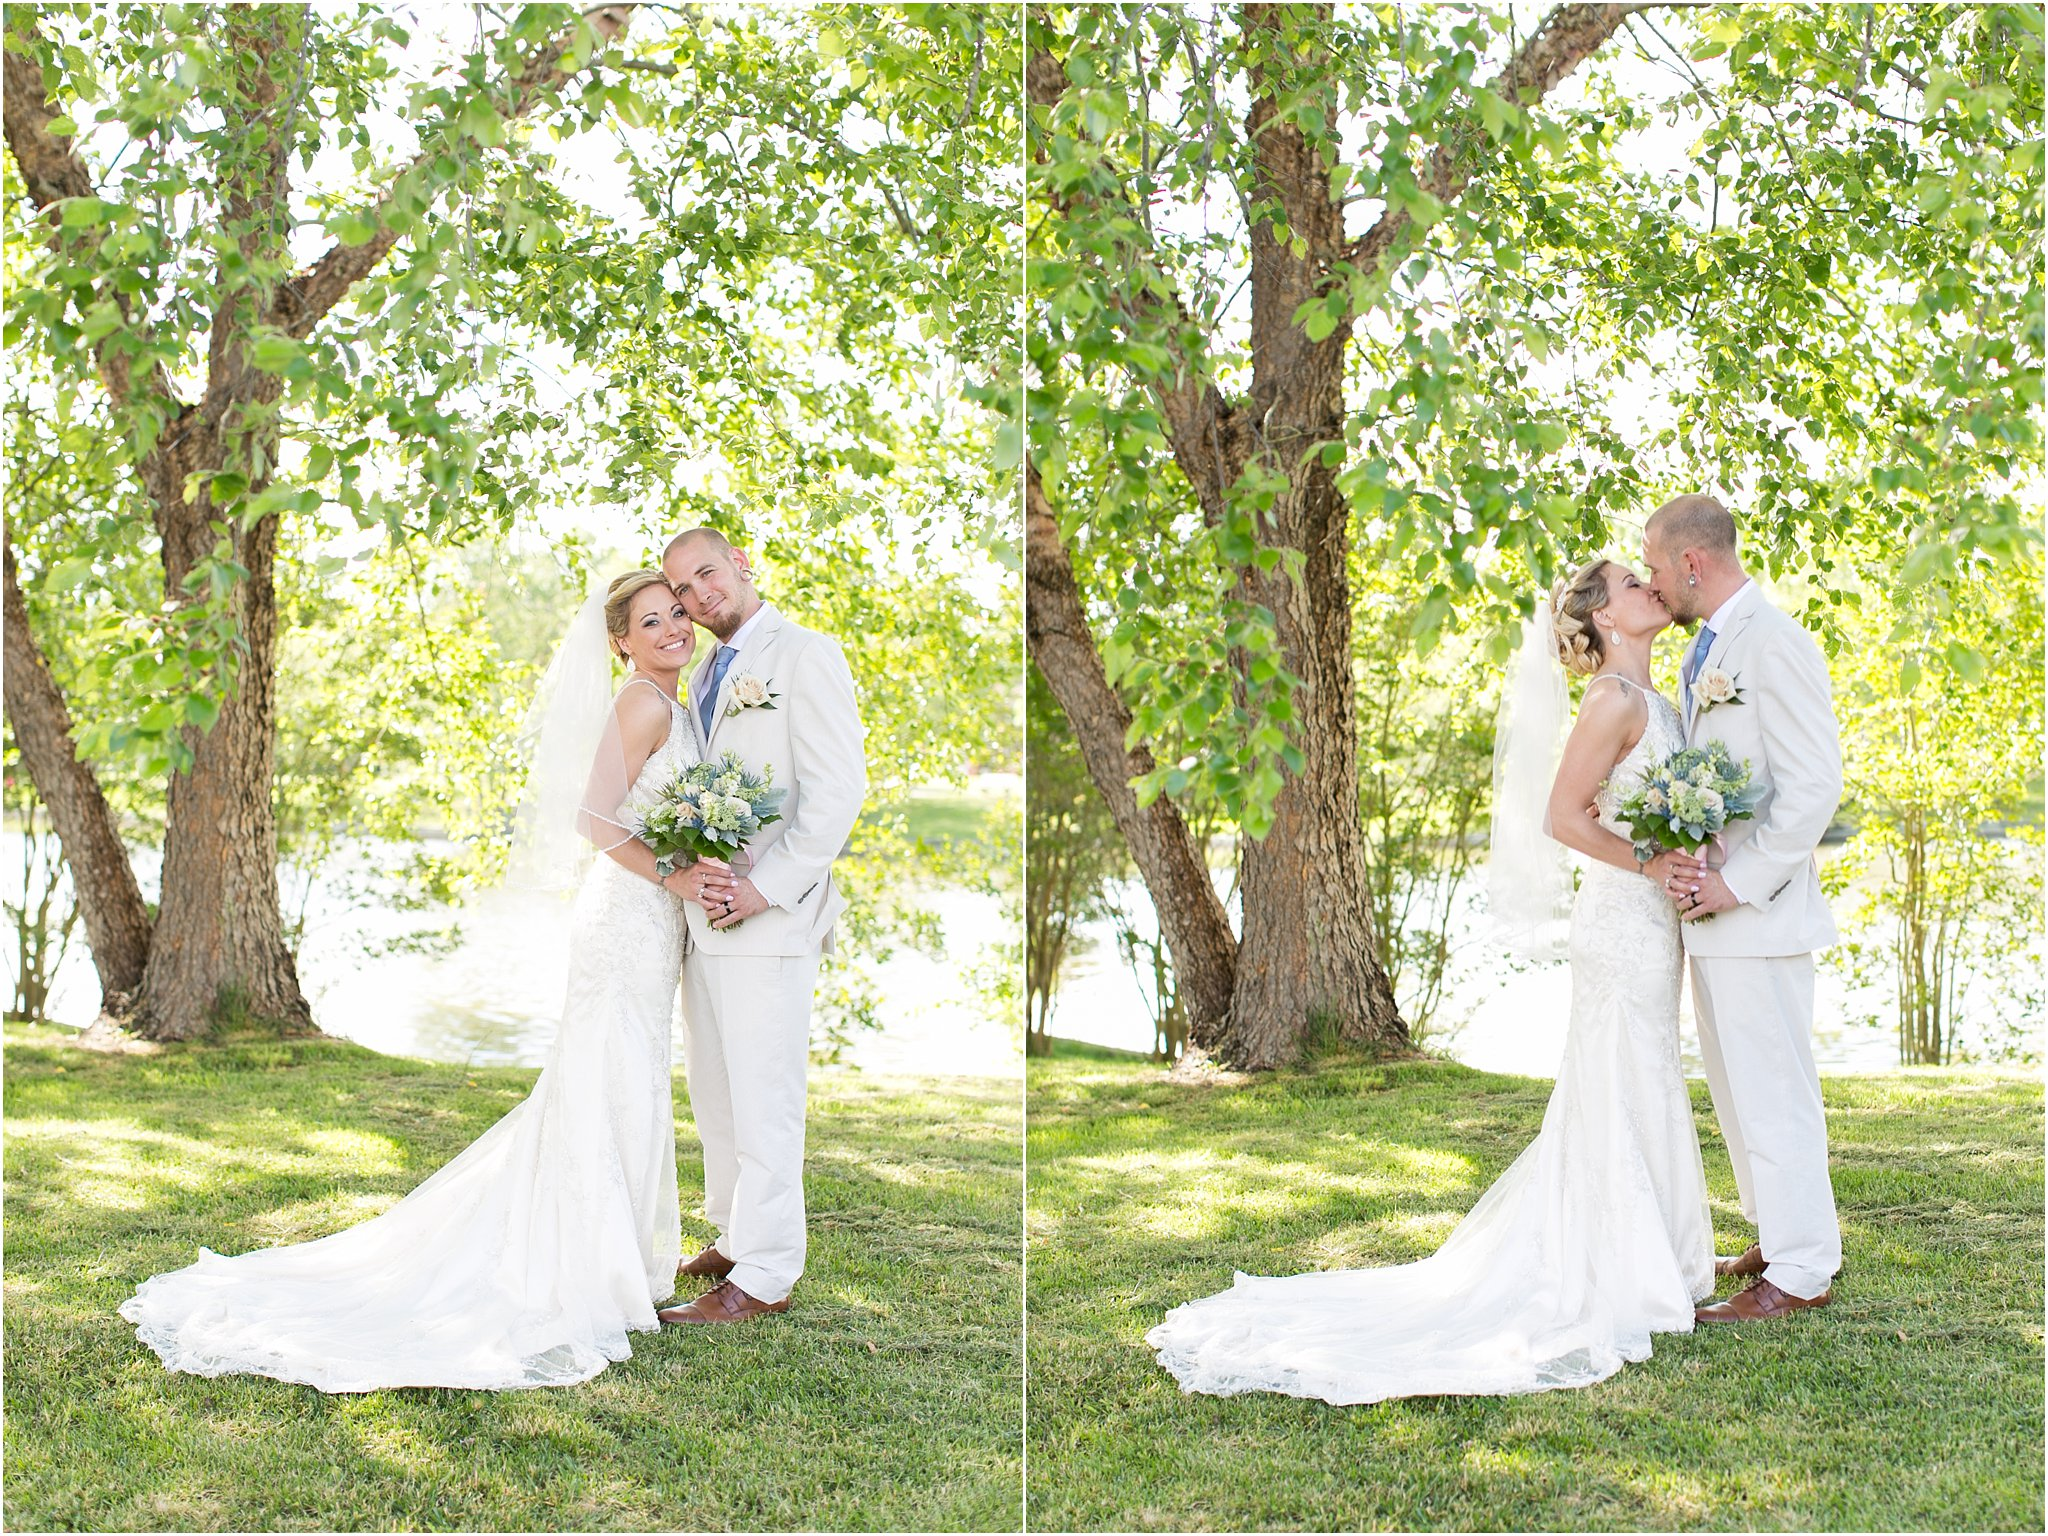 jessica_ryan_photography_virginia_virginiabeachweddingphotographer_studioIdo_backyardwedding_waterfrontwedding_1669